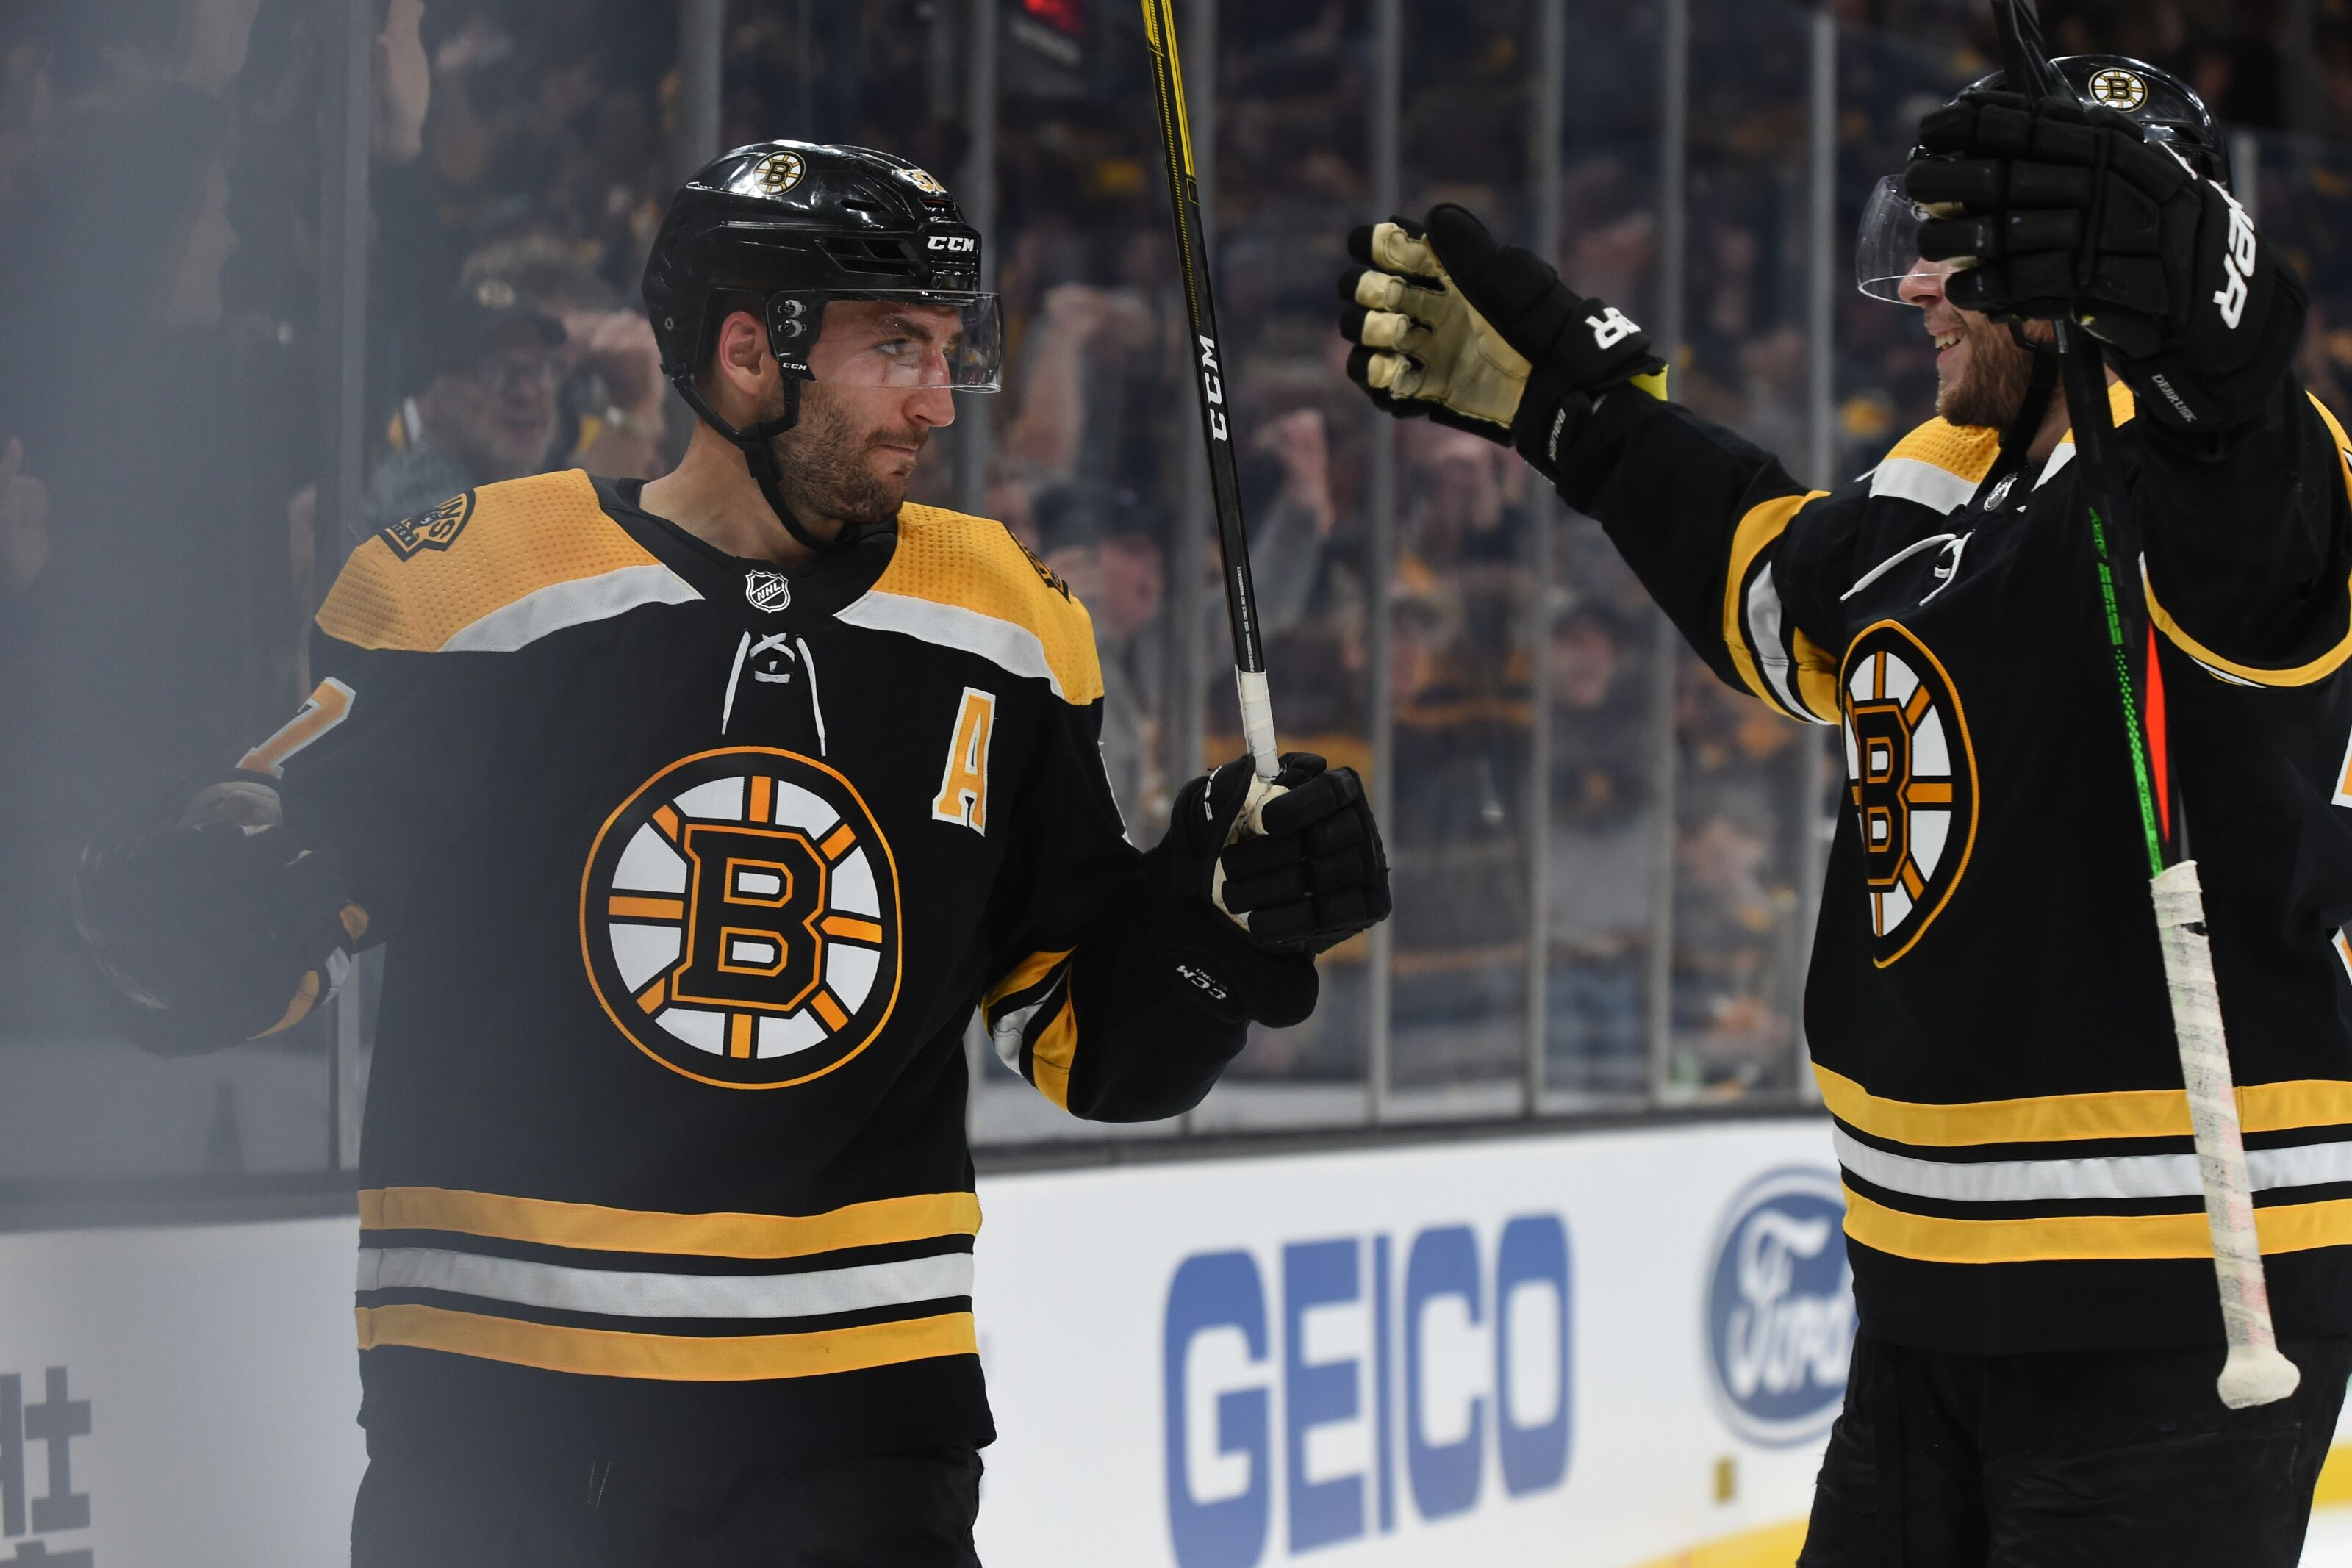 Boston Bruins: Should we be concerned with lack of secondary scoring?